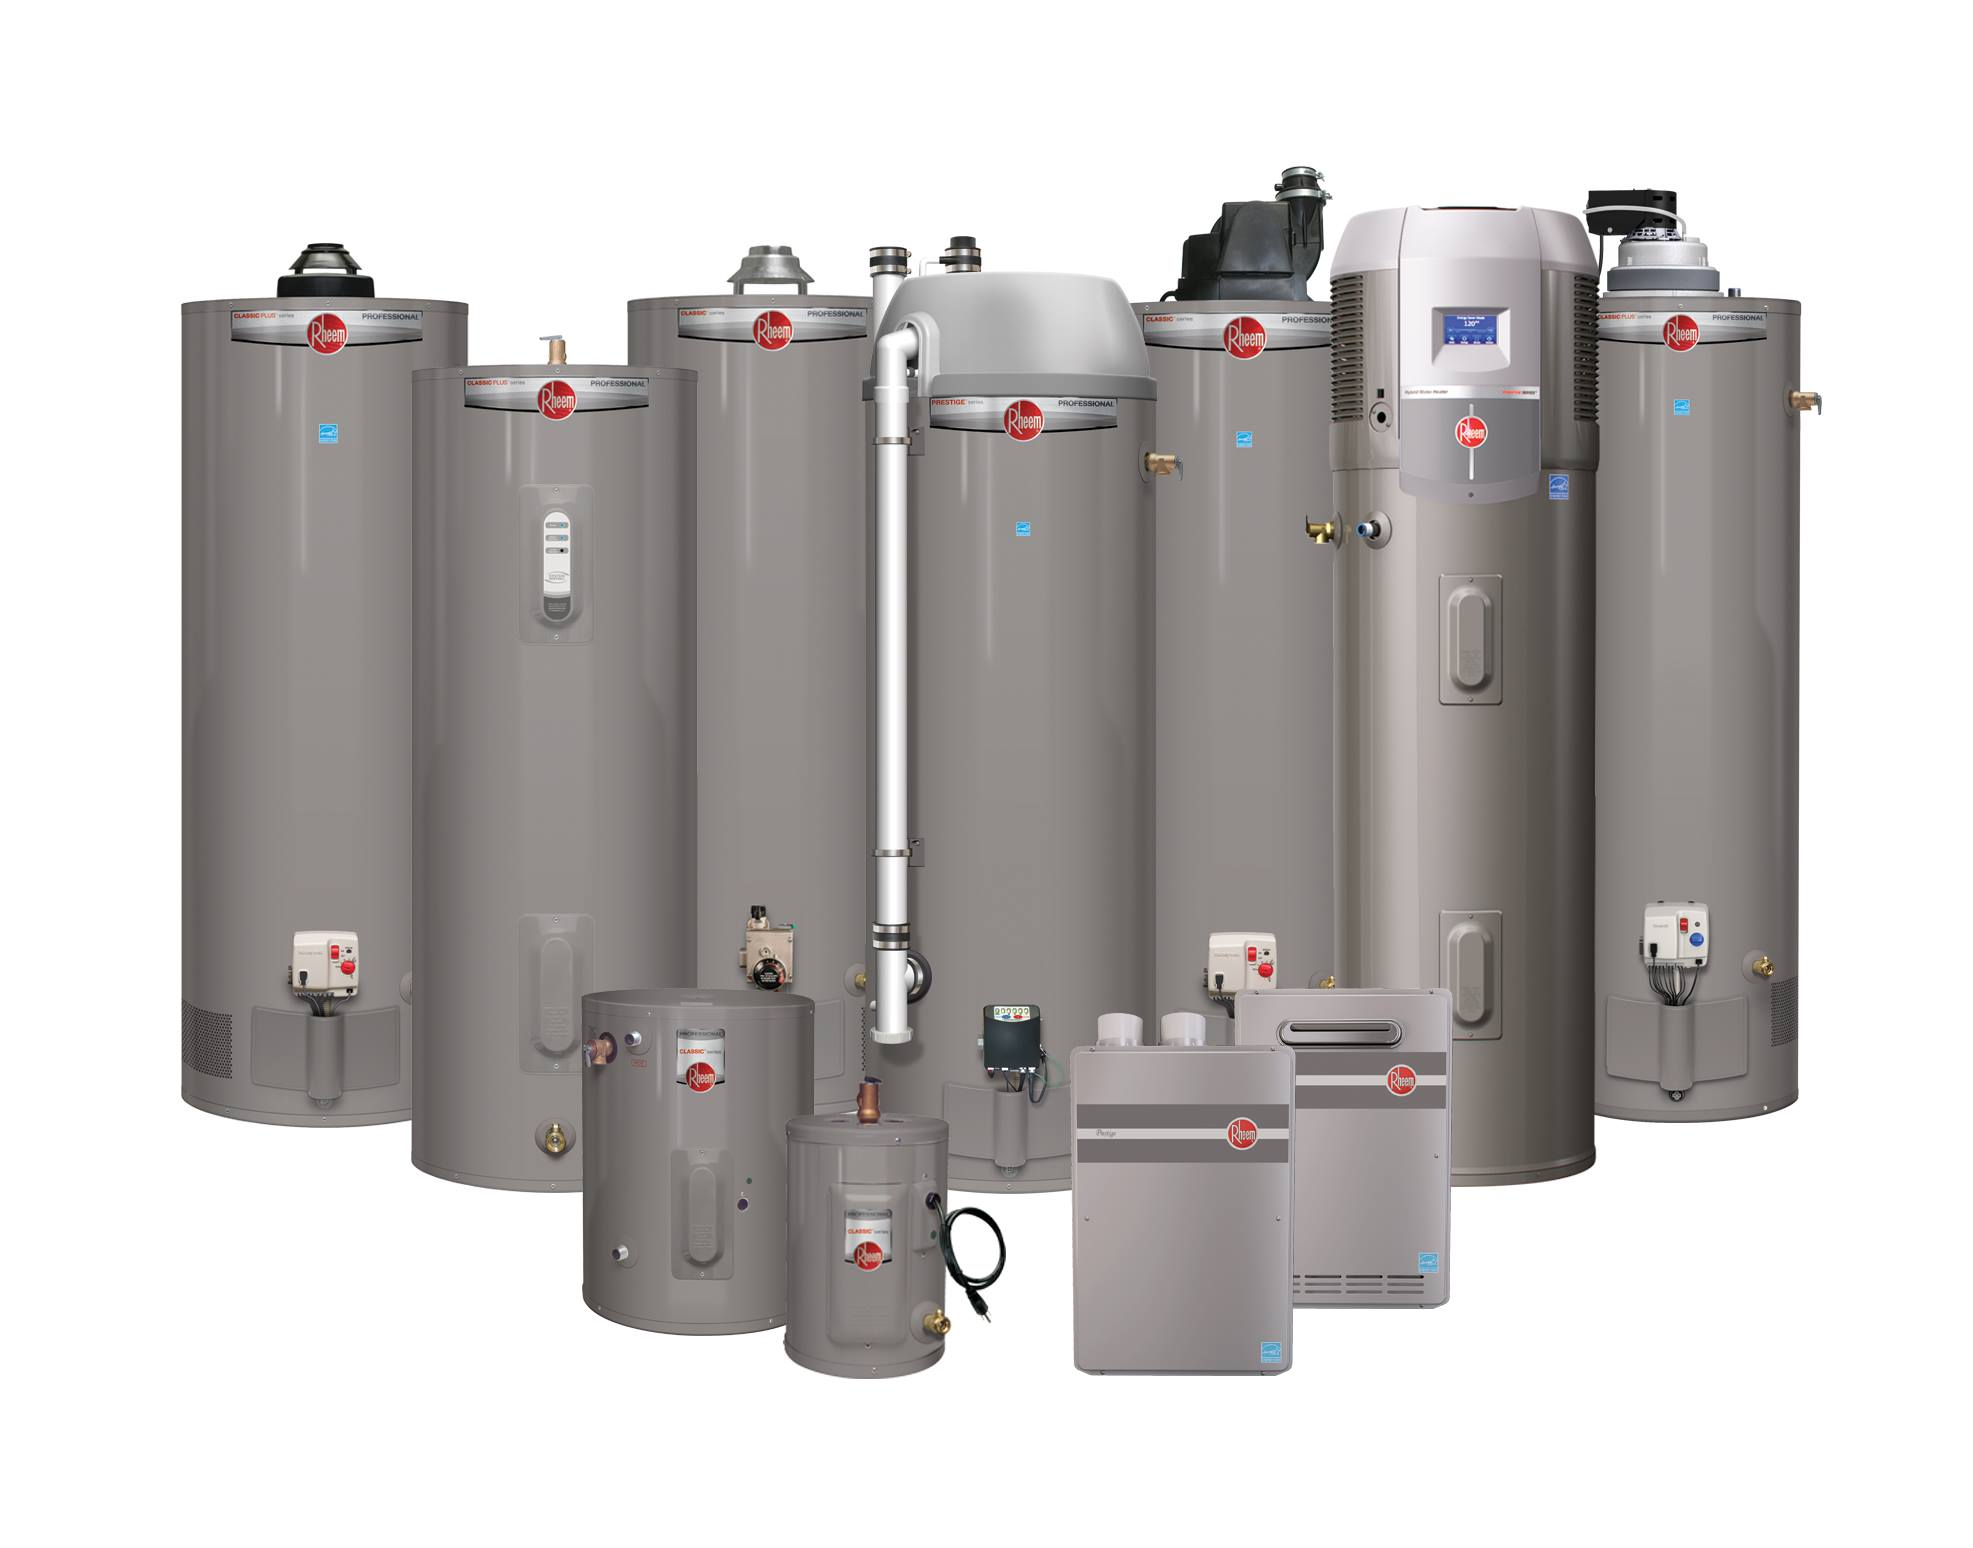 water heater replacement San Diego and San Diego county based contractors